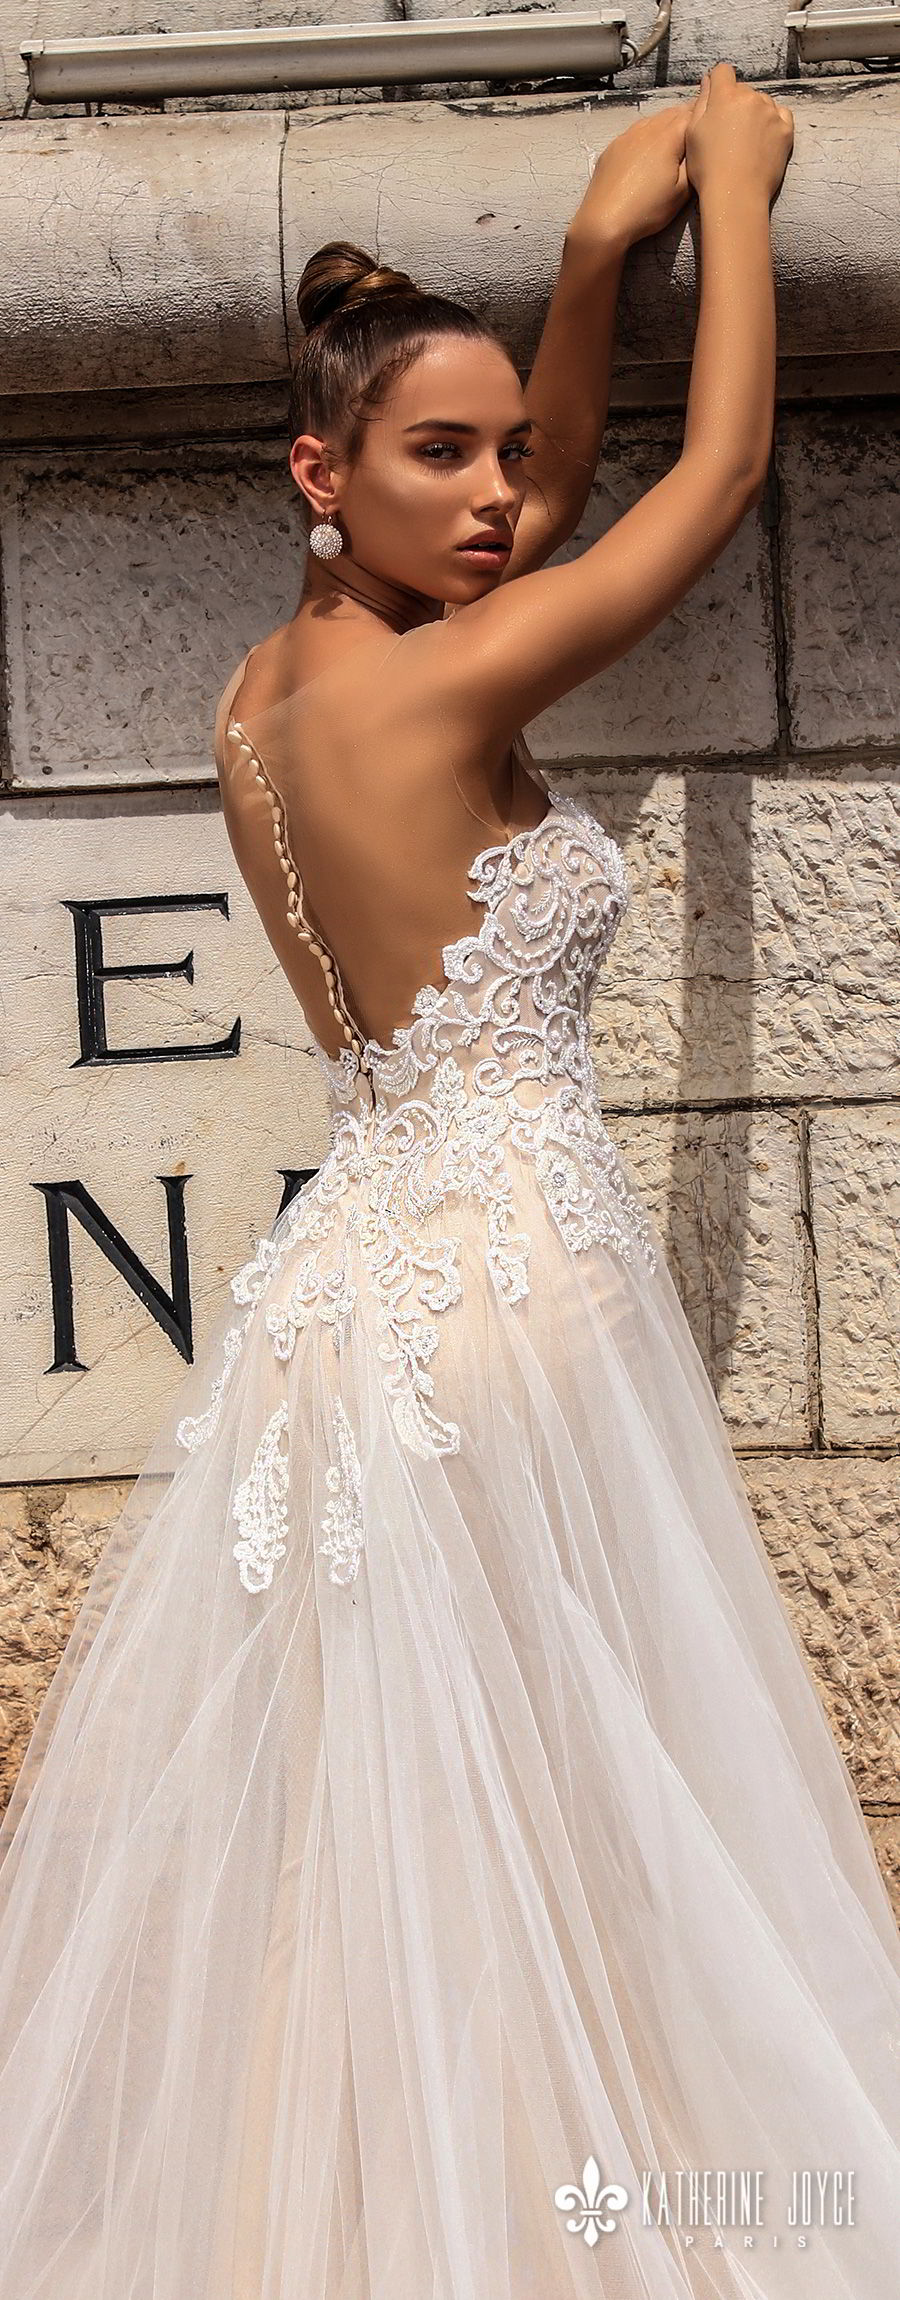 katherine joyce 2018 bridal sleeveless illusion bateau sweetheart neckline heavily embellished bodice tulle skirt romantic a  line wedding dress sheer button back chapel train (consuela) zbv